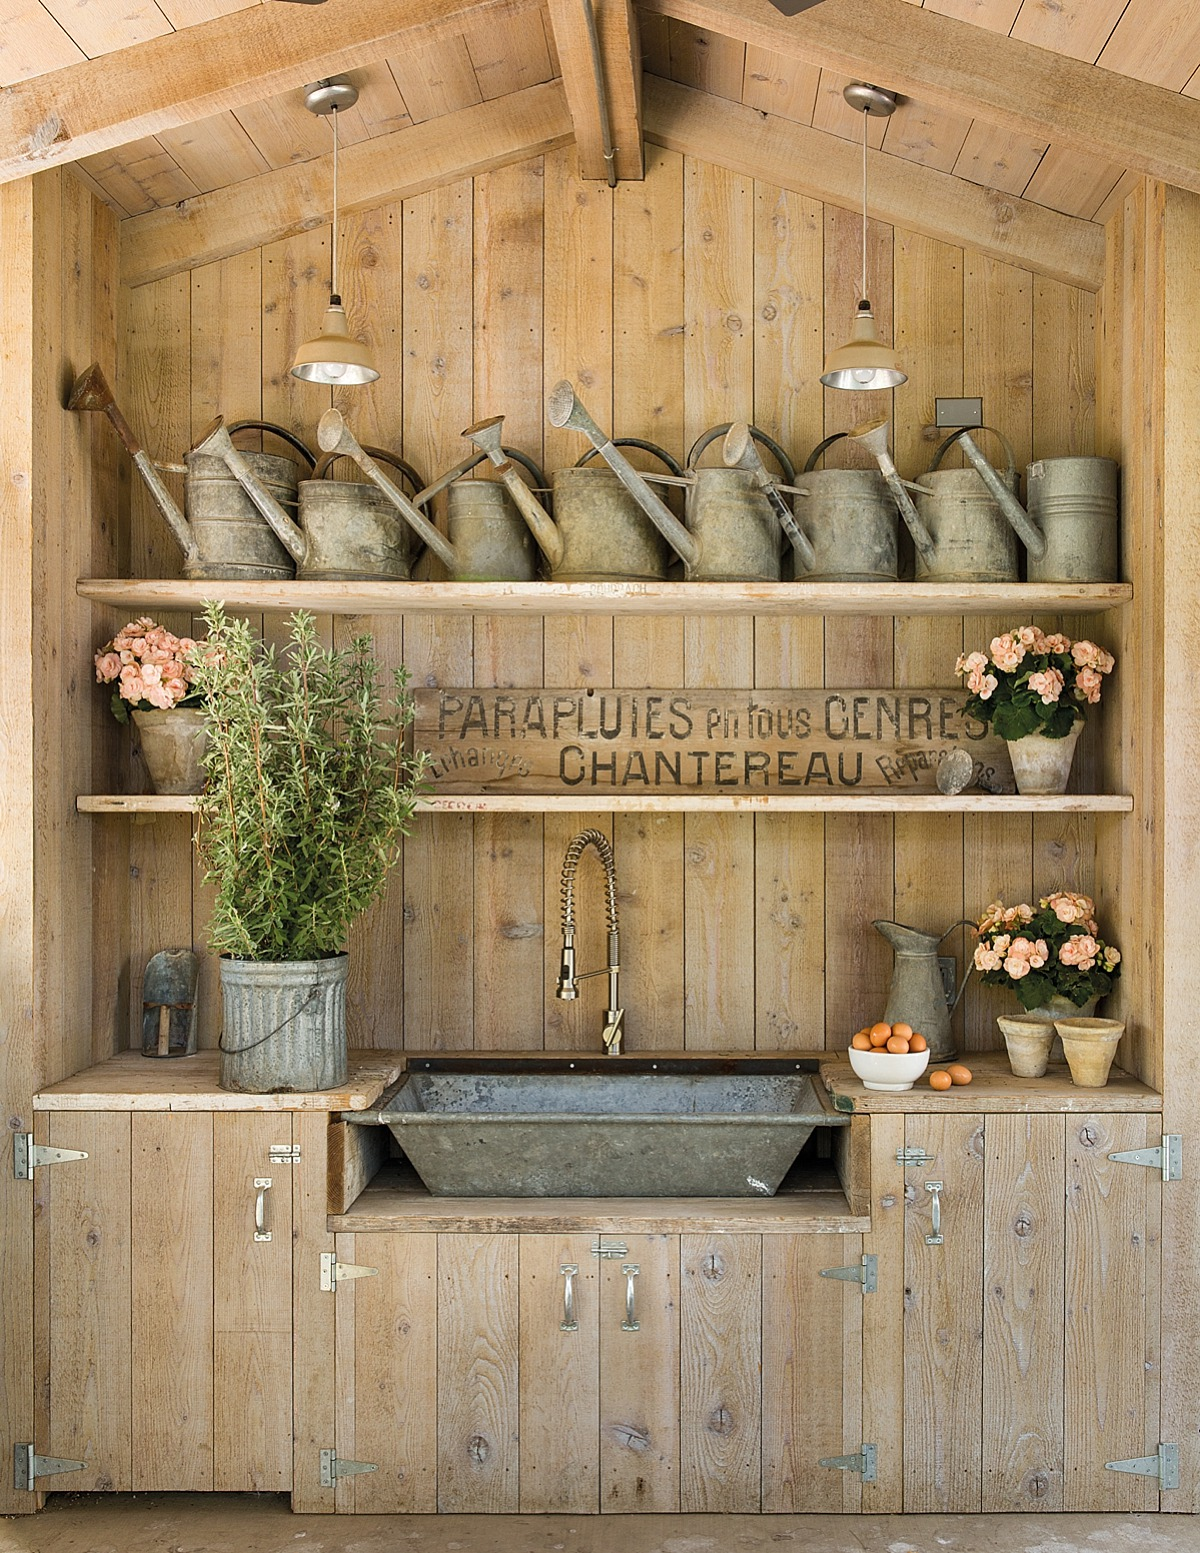 The chicken coop at Patina Farm, the home of Brooke and Steven Giannetti in Ojai, CA.  Architecture by Steven Giannetti and interior design by Brooke Giannetti.